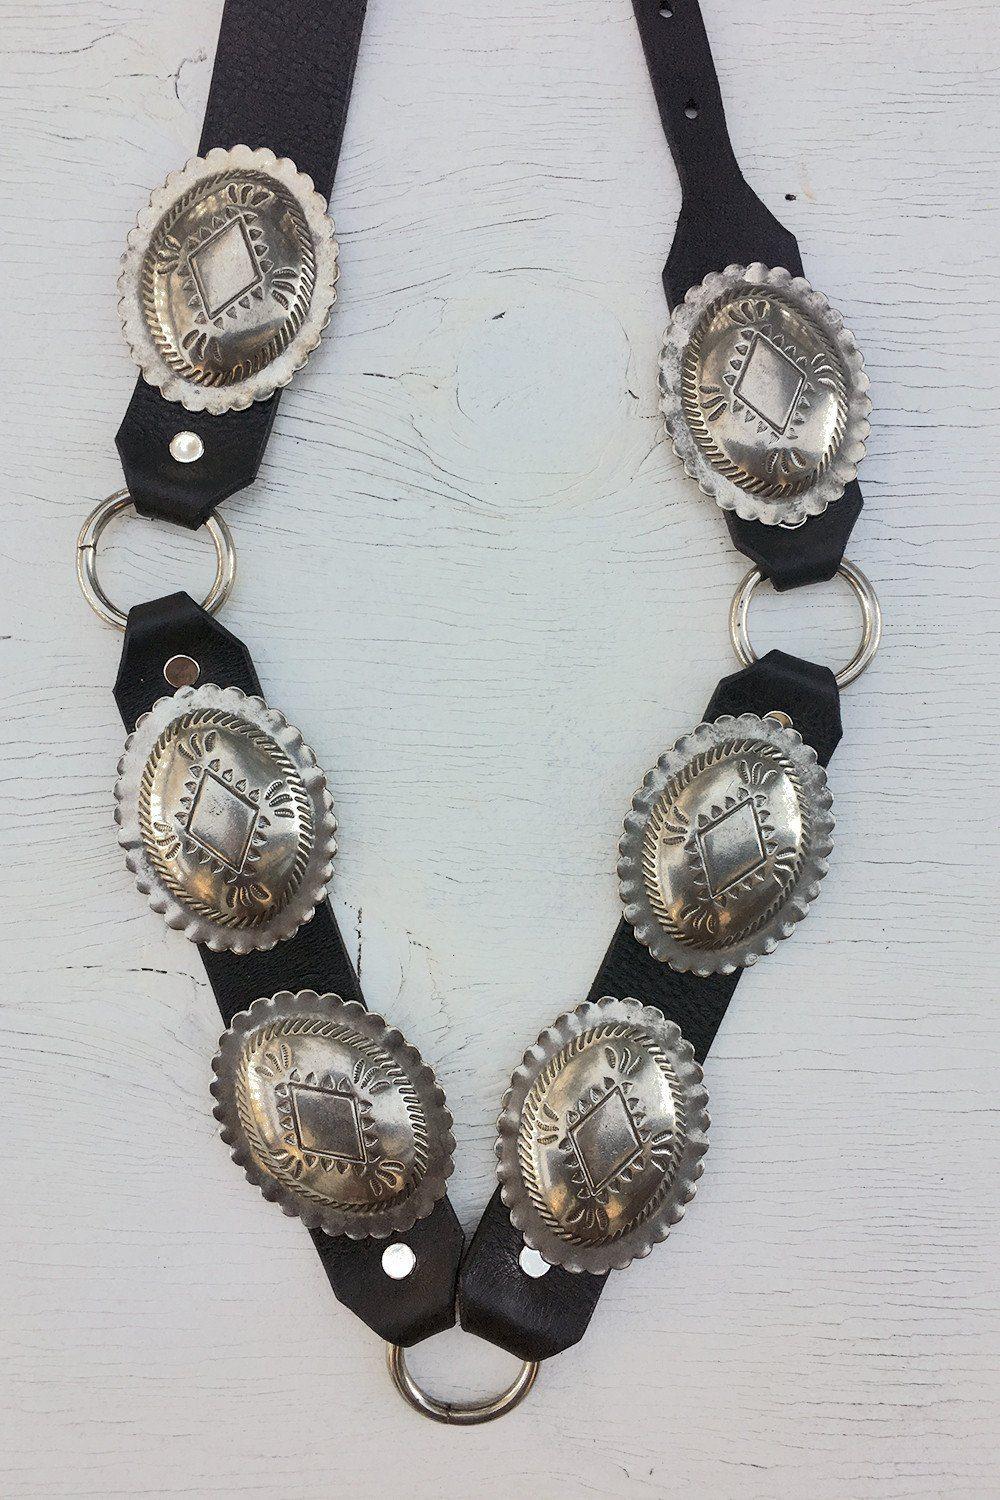 Black Leather Solid Concho Belt by Hell Bent Leather (Various Sizes Available), Accessories, Hell Bent Leather, BACKBITE